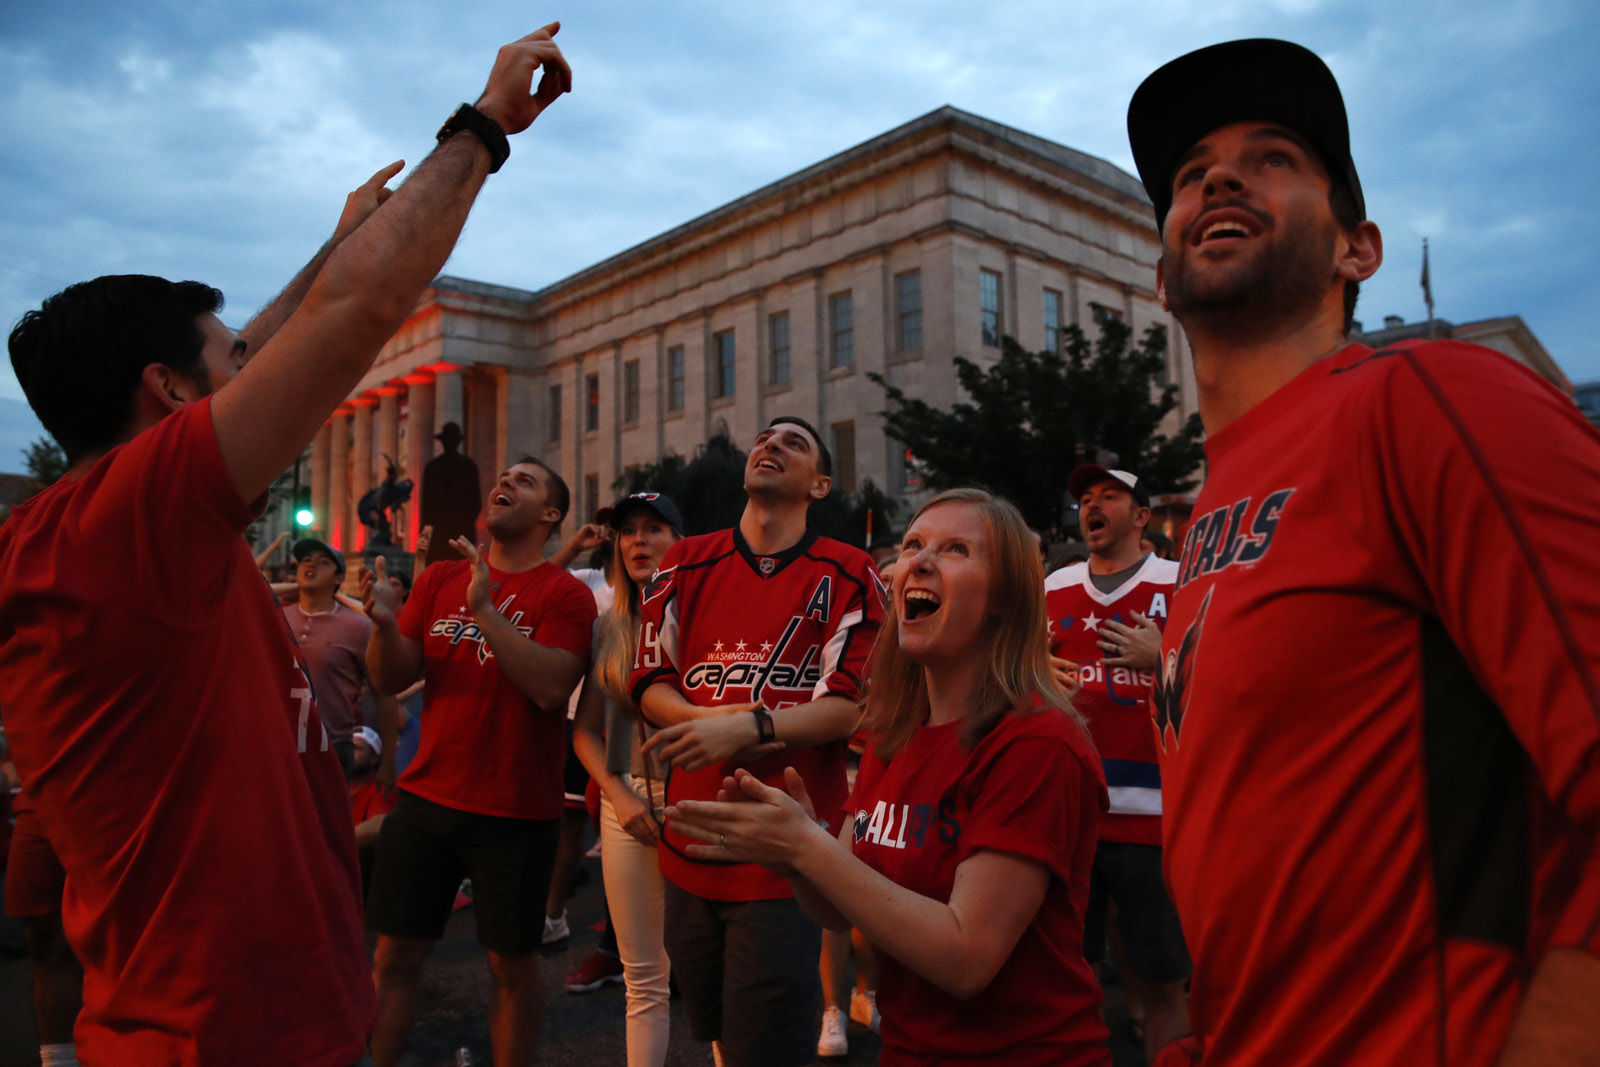 Jack Hanlon, left, of Alexandria, Va.; Allison Baden, of Alexandria; and Adam Abramson, right, of Washington, react to a goal that they thought was scored by the Washington Capitals, as they watch Game 3 of the NHL hockey Stanley Cup Final between the Washington Capitals and the Vegas Golden Knights on a large screen outside the arena Saturday, June 2, 2018, in Washington. (AP Photo/Jacquelyn Martin)